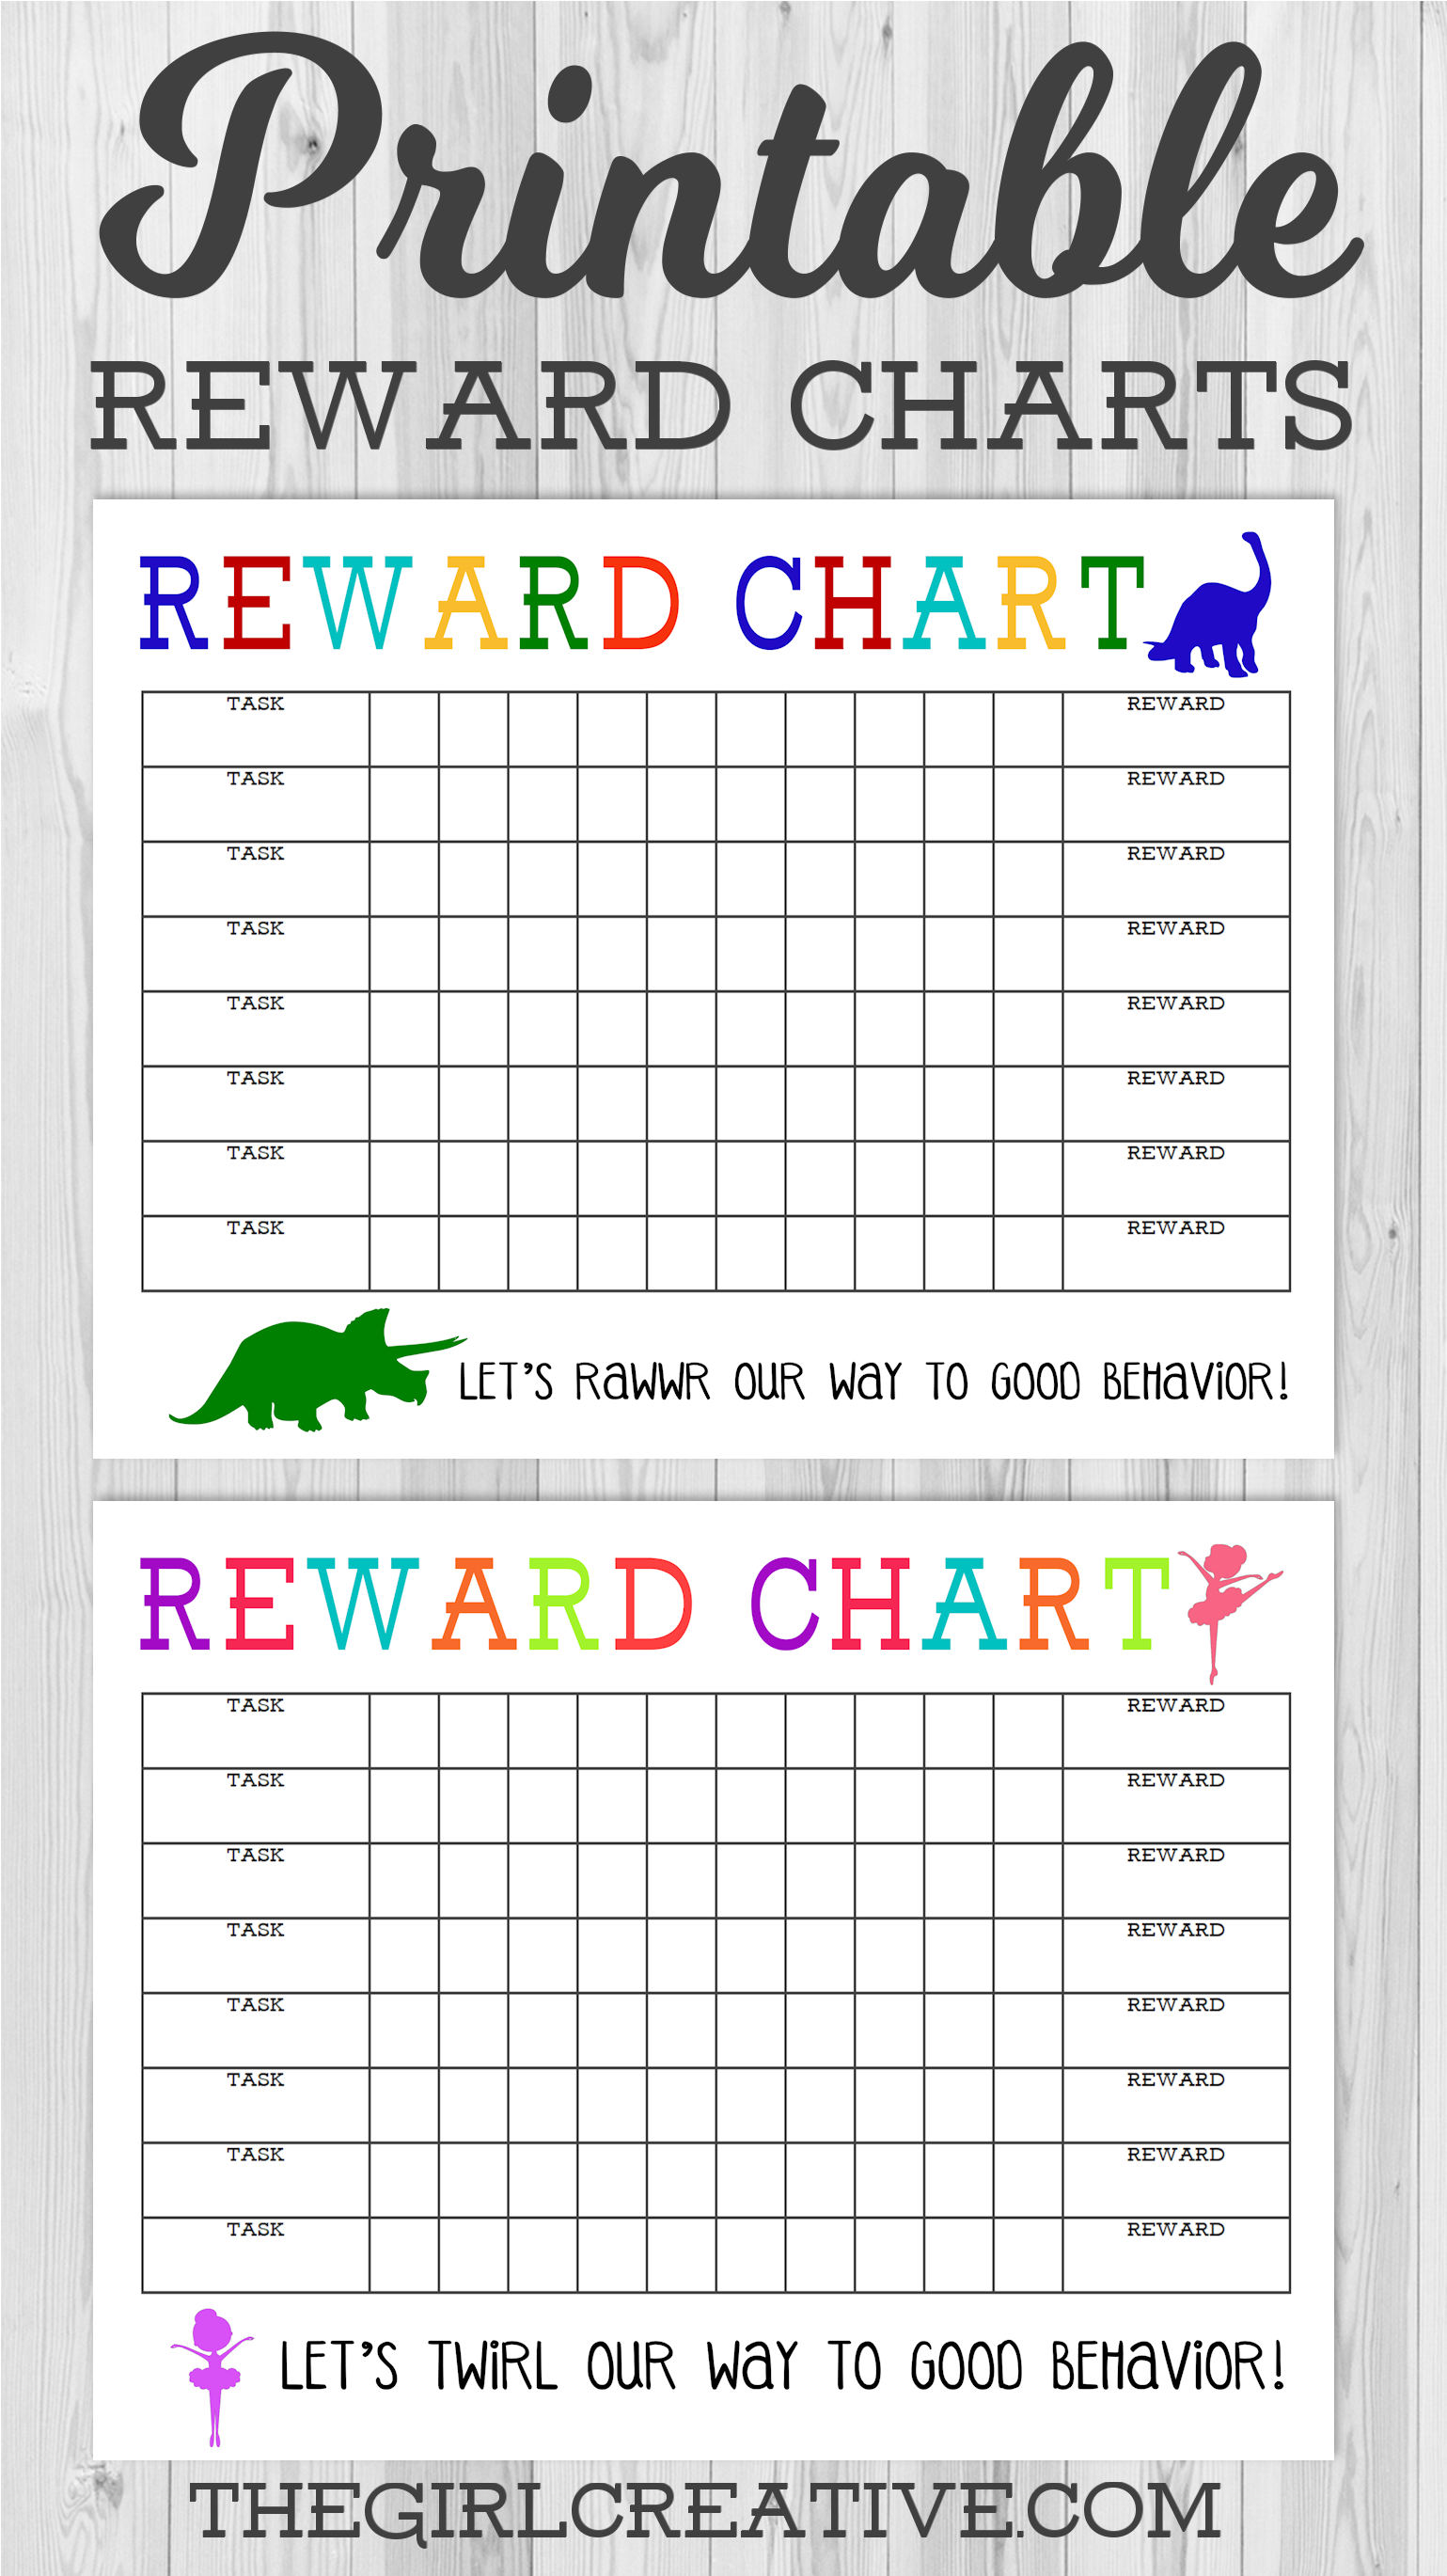 photo regarding Star Reward Chart Printable called Printable Advantage Chart - The Female Innovative